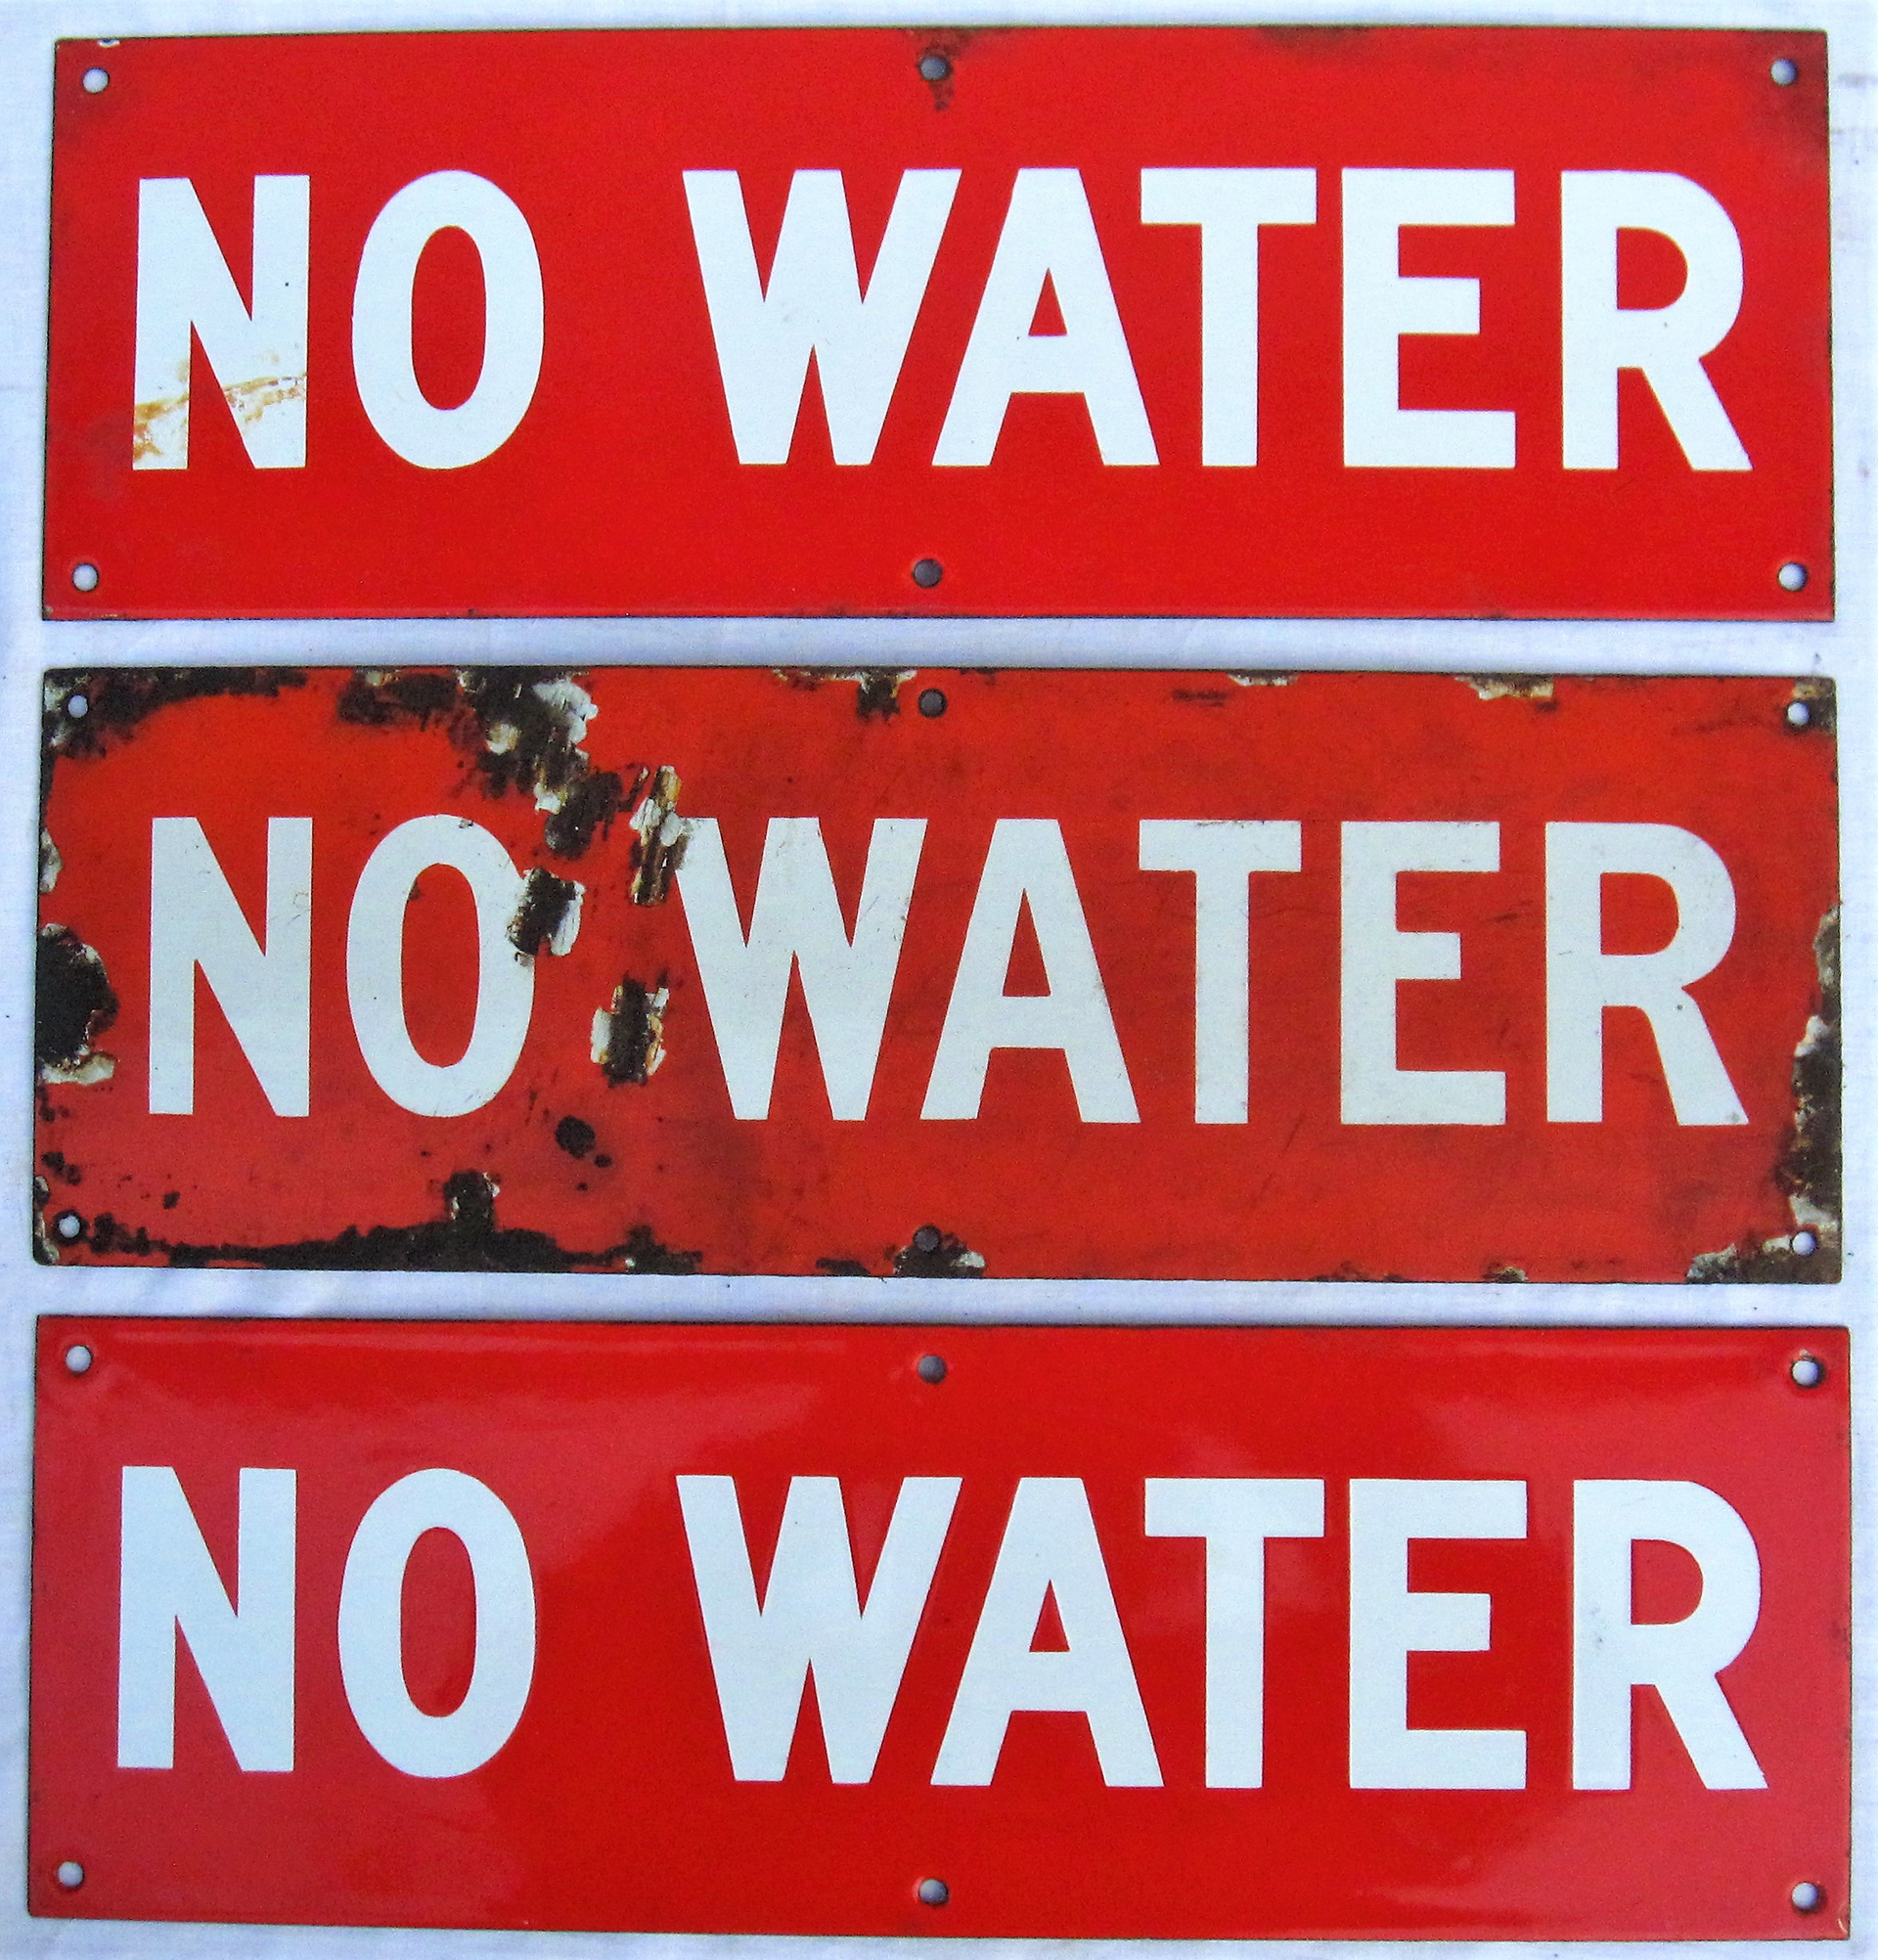 3 x enamel signs. NO WATER. Believed to be used at out stations without watering facilities.